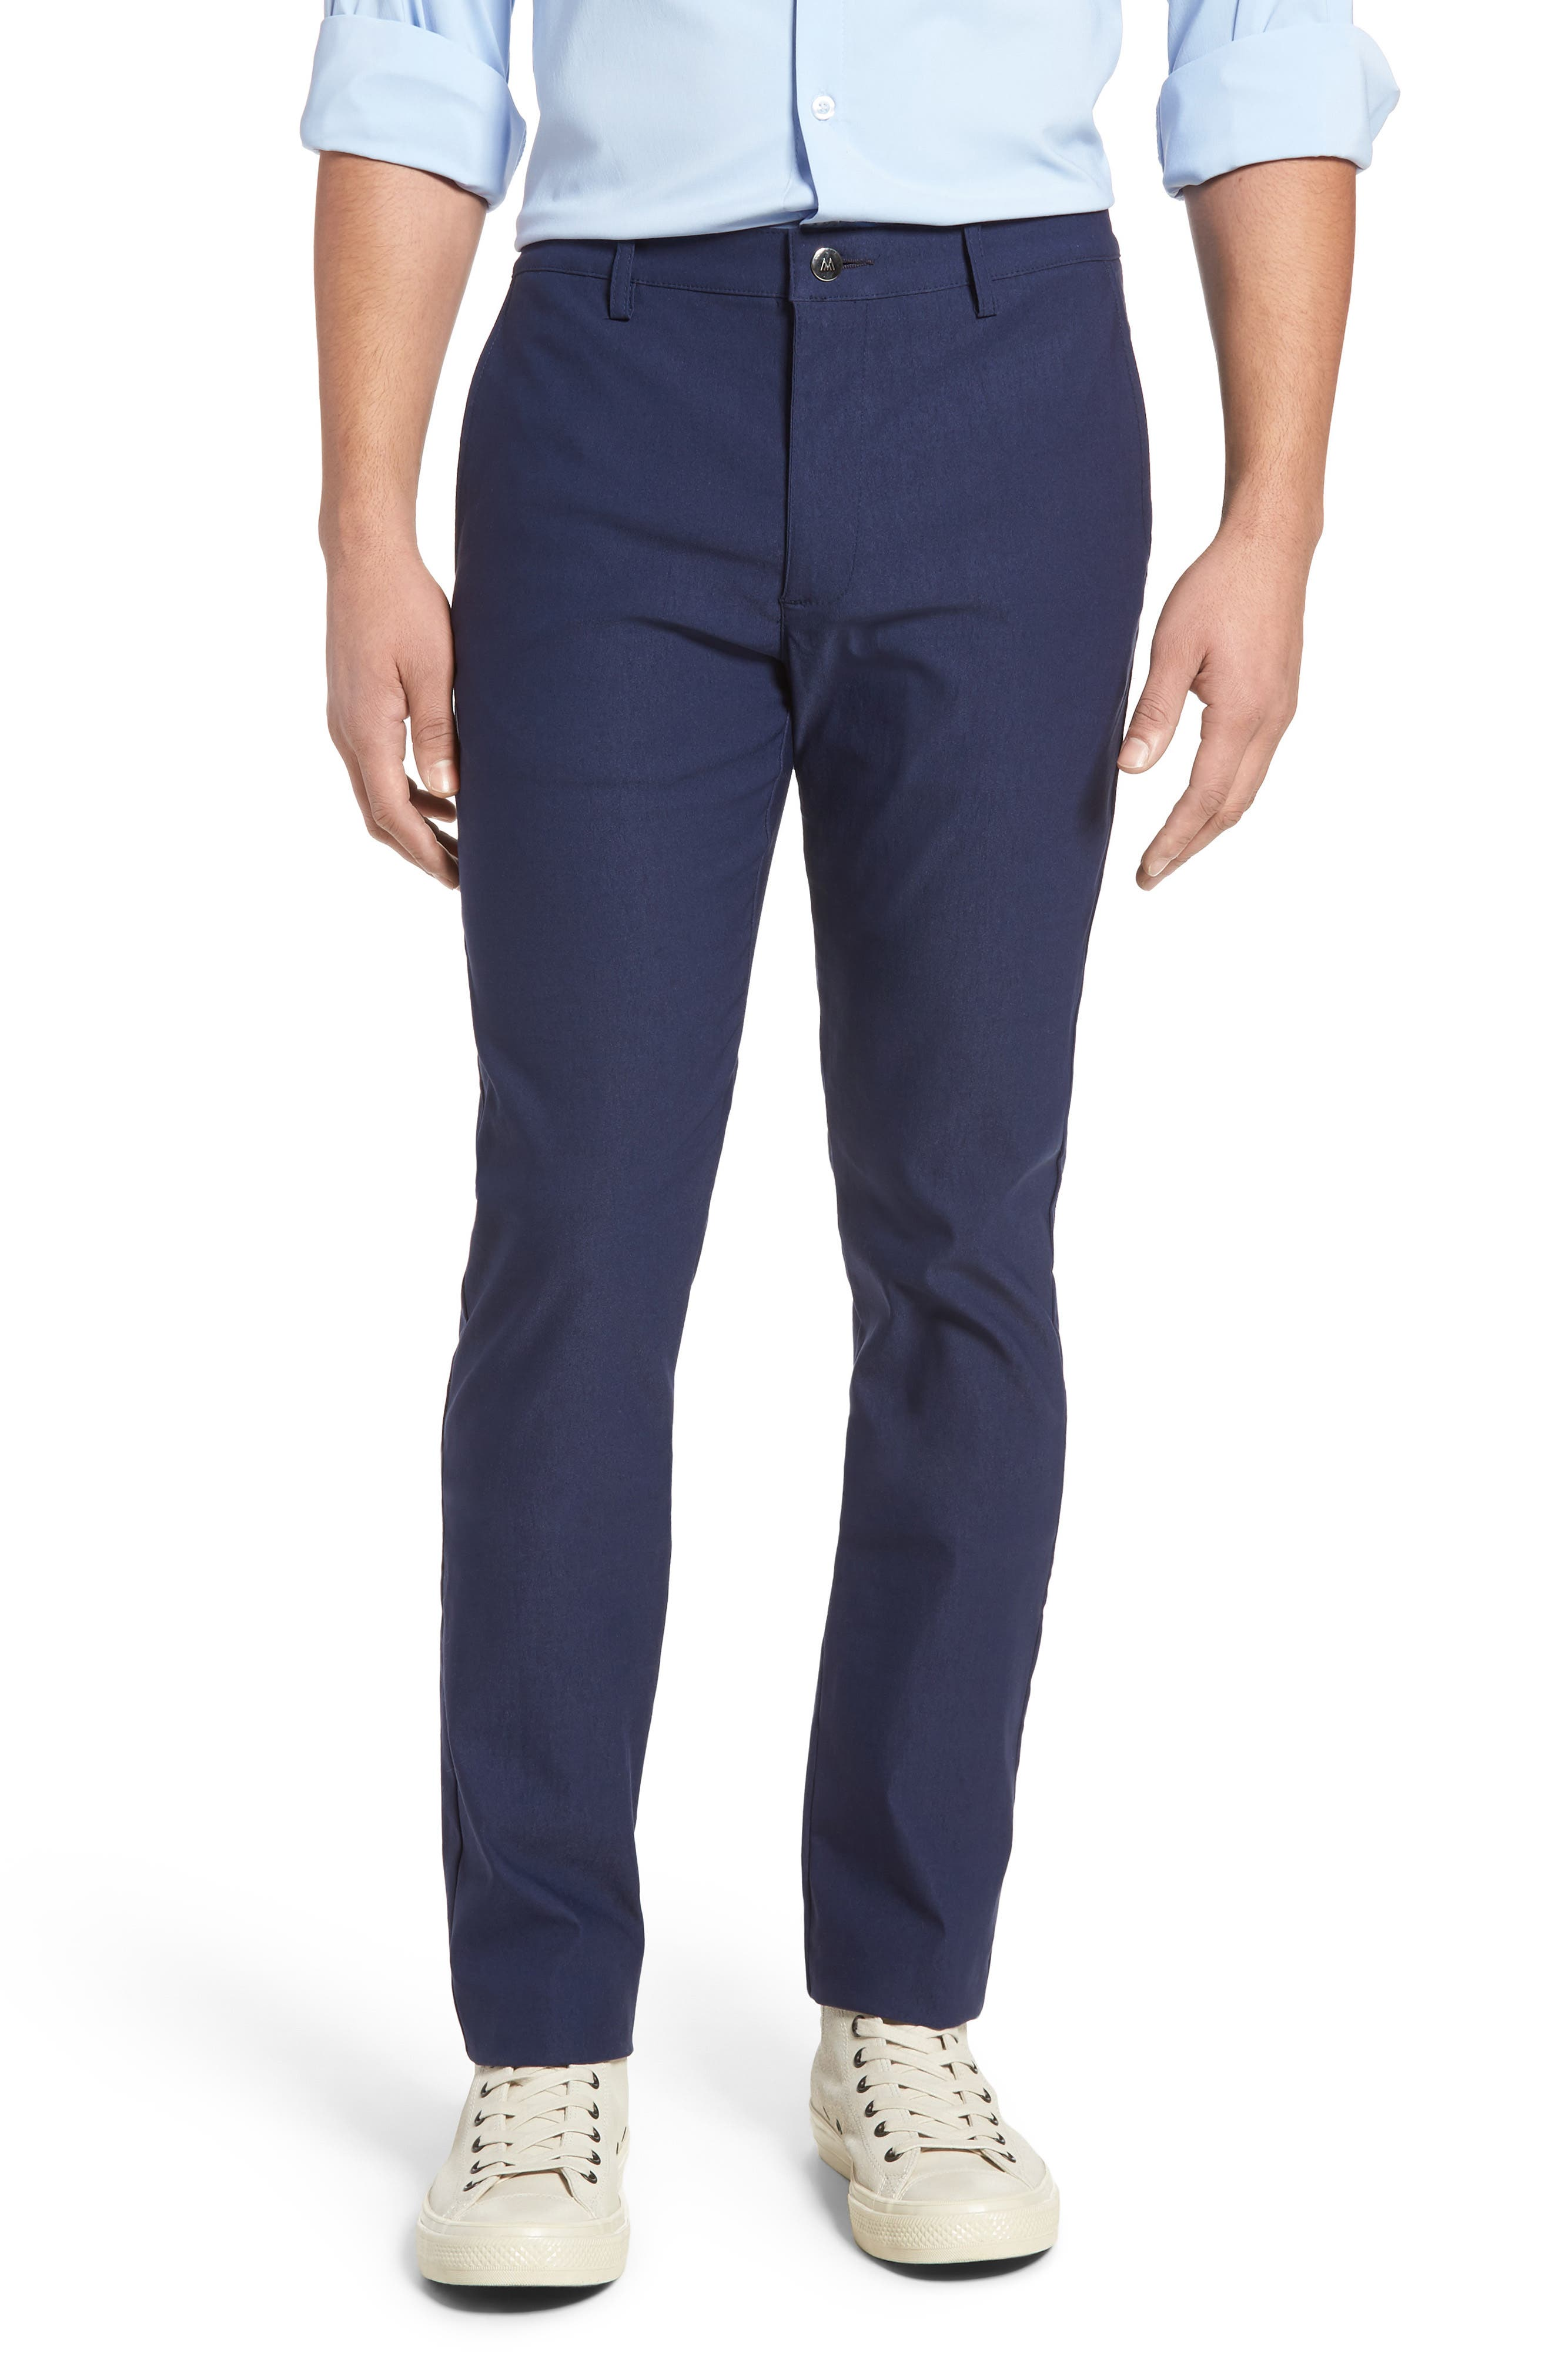 President Trim Fit Performance Chinos,                             Main thumbnail 1, color,                             400